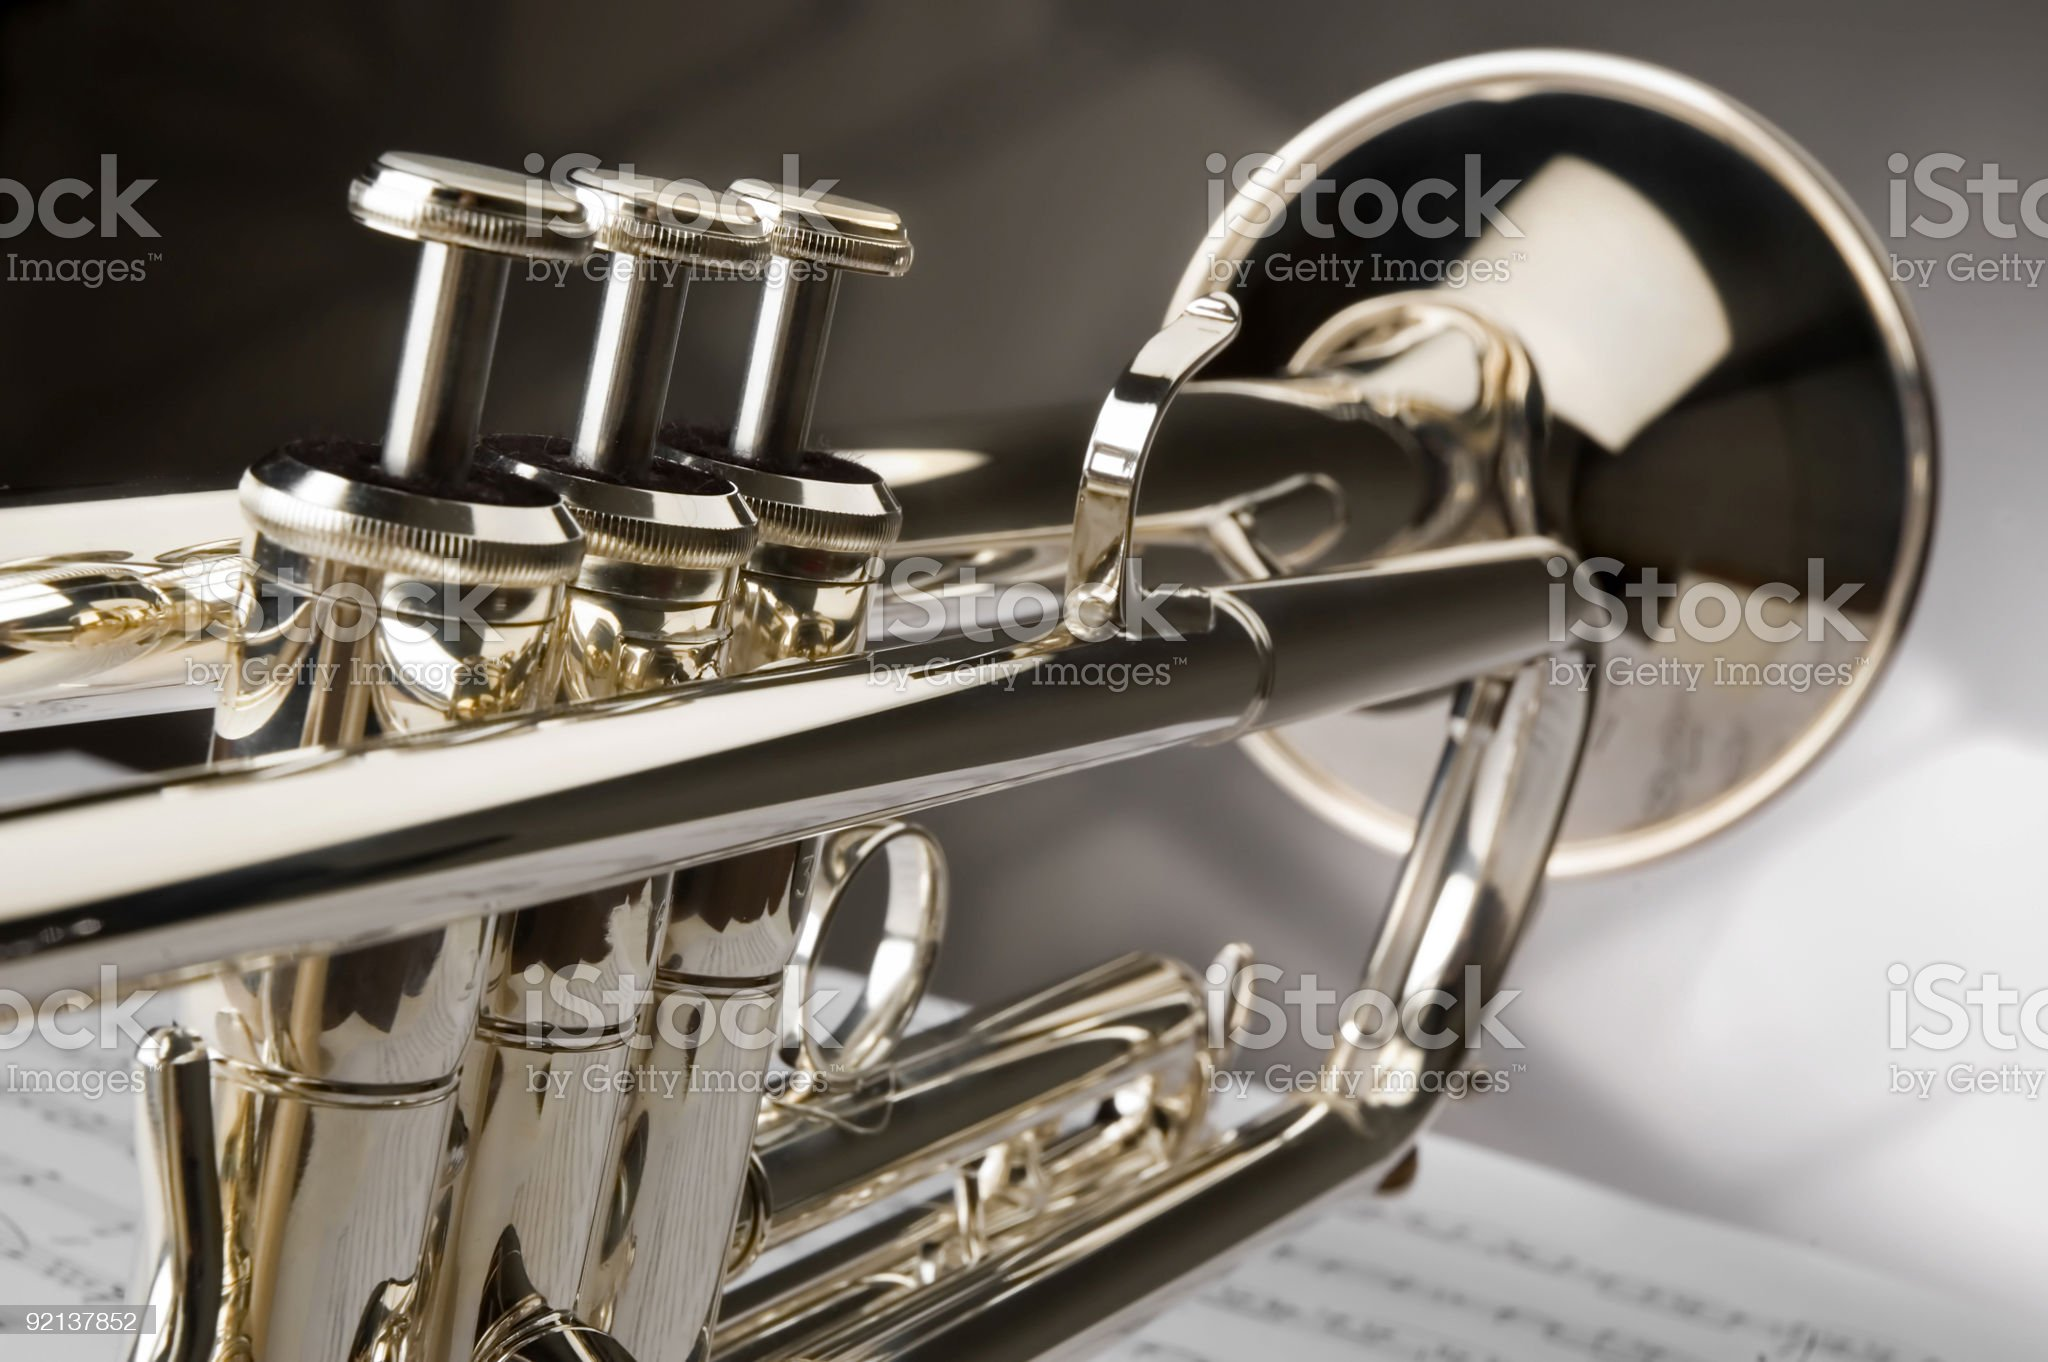 Close-up of polished trumpet sitting atop a sheet of music royalty-free stock photo